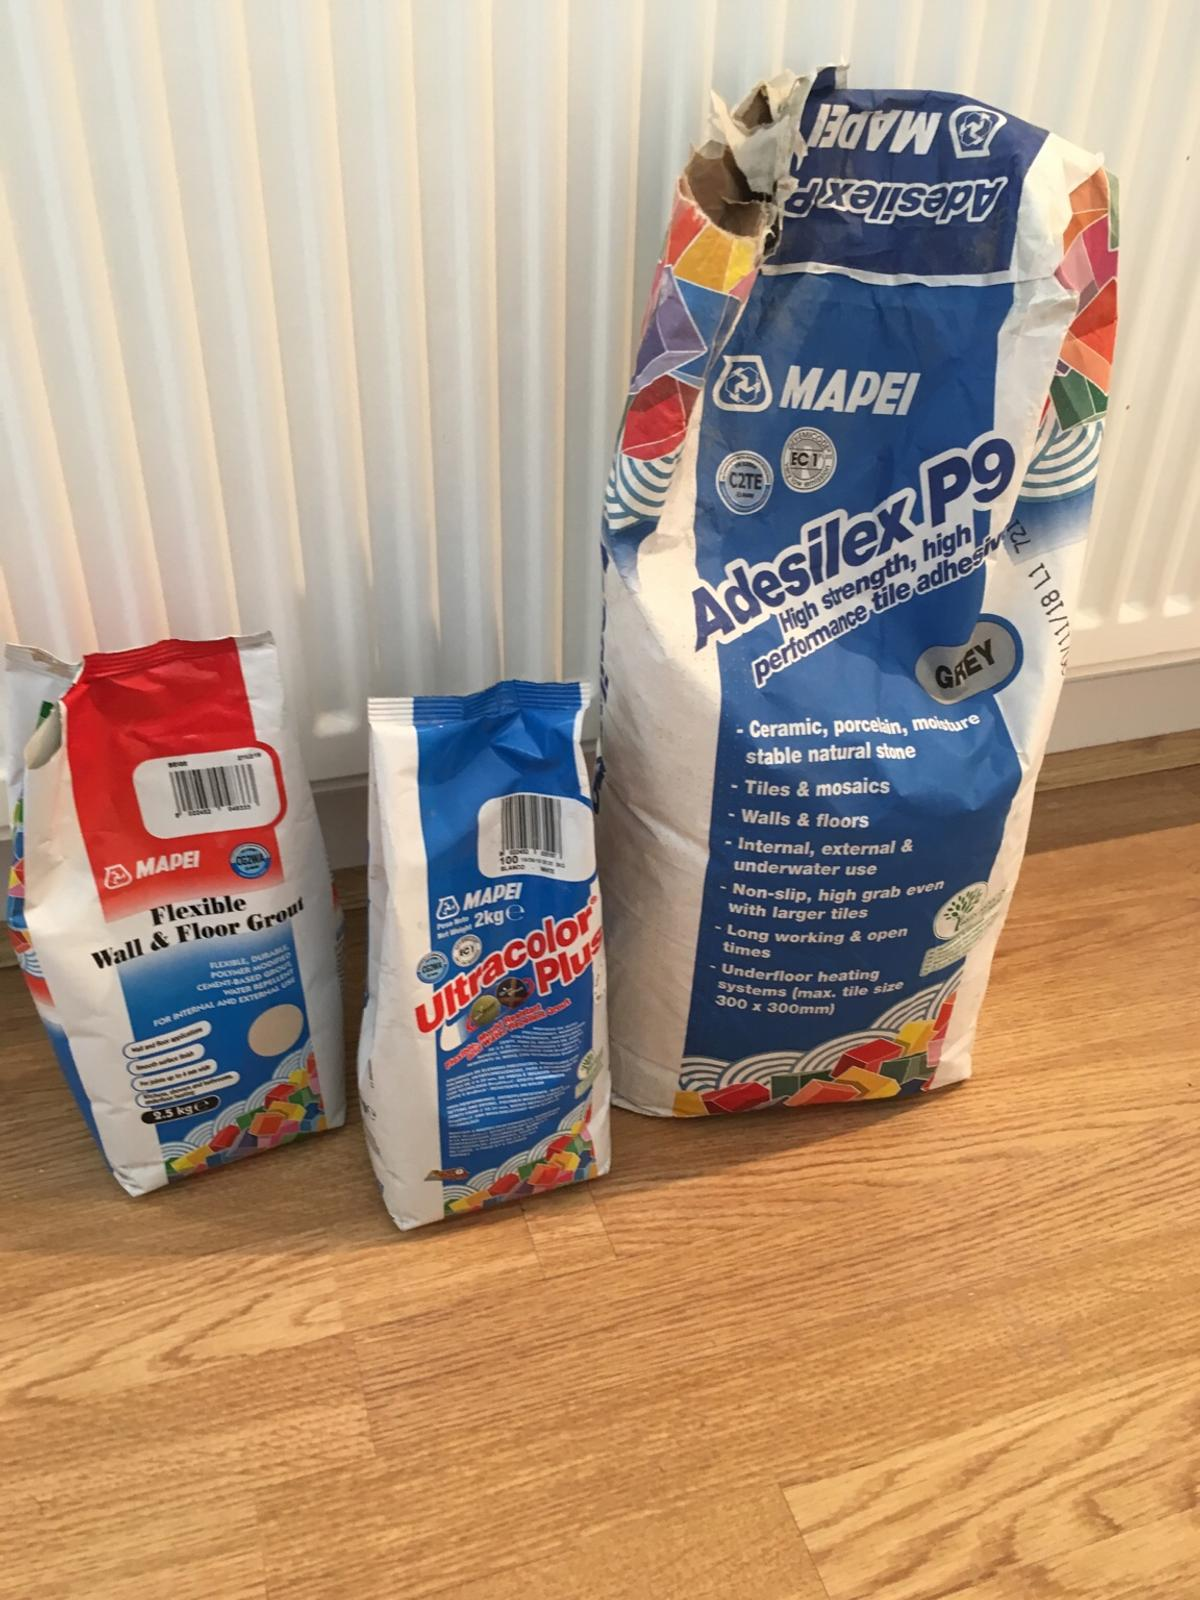 Mapei floor and wall grout and adhesive